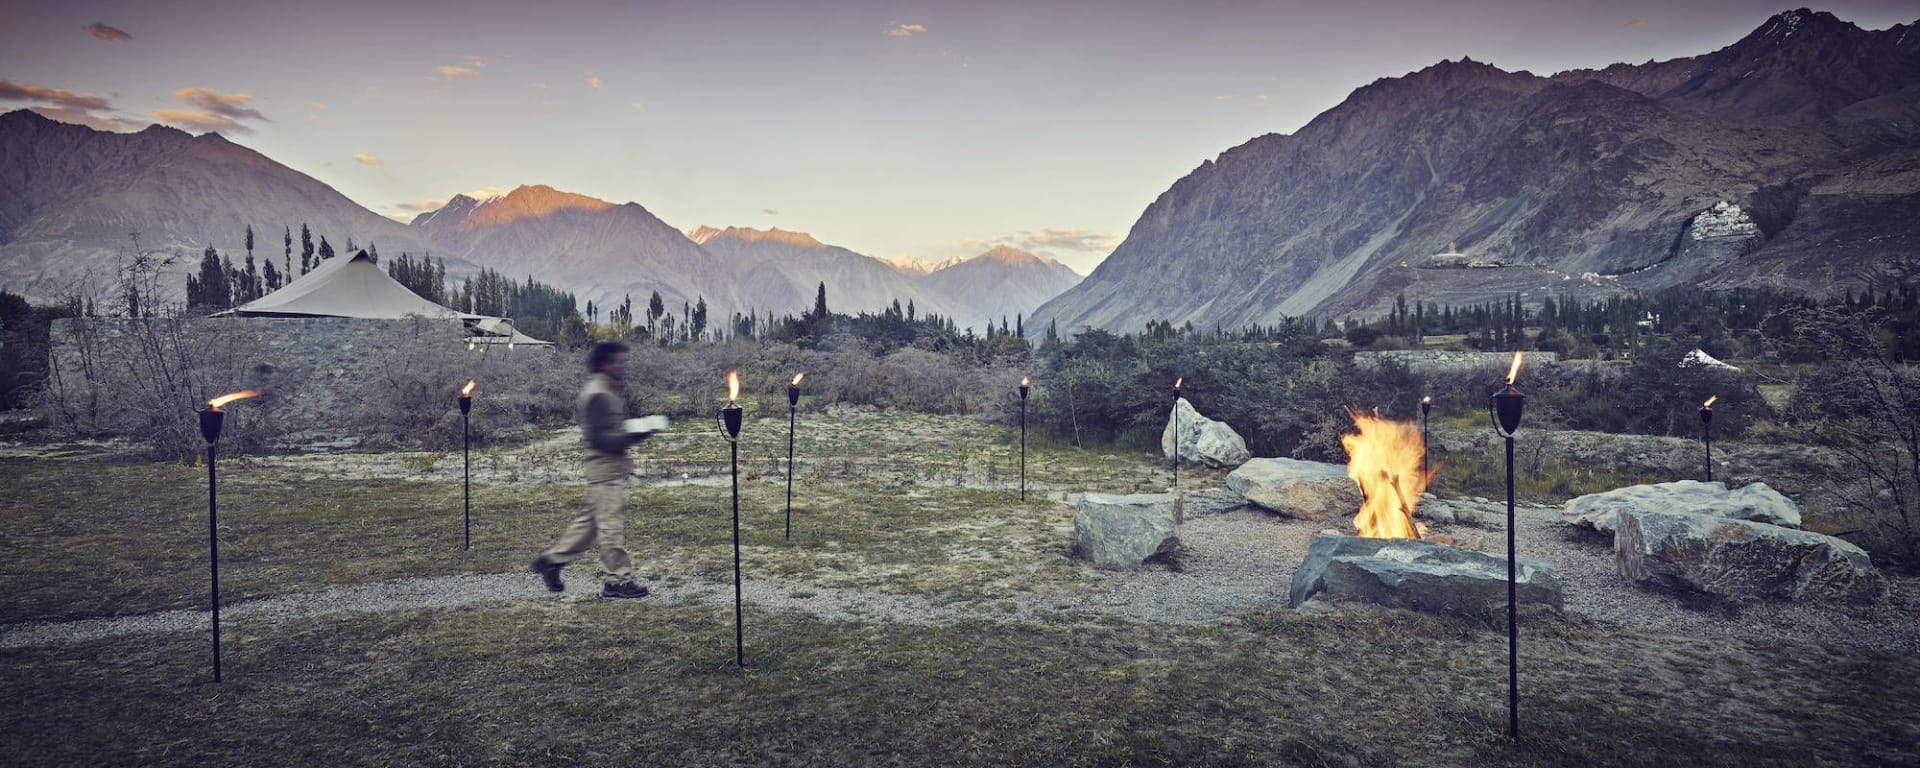 Le Ladakh luxueux de Leh: nubra valley bonfire